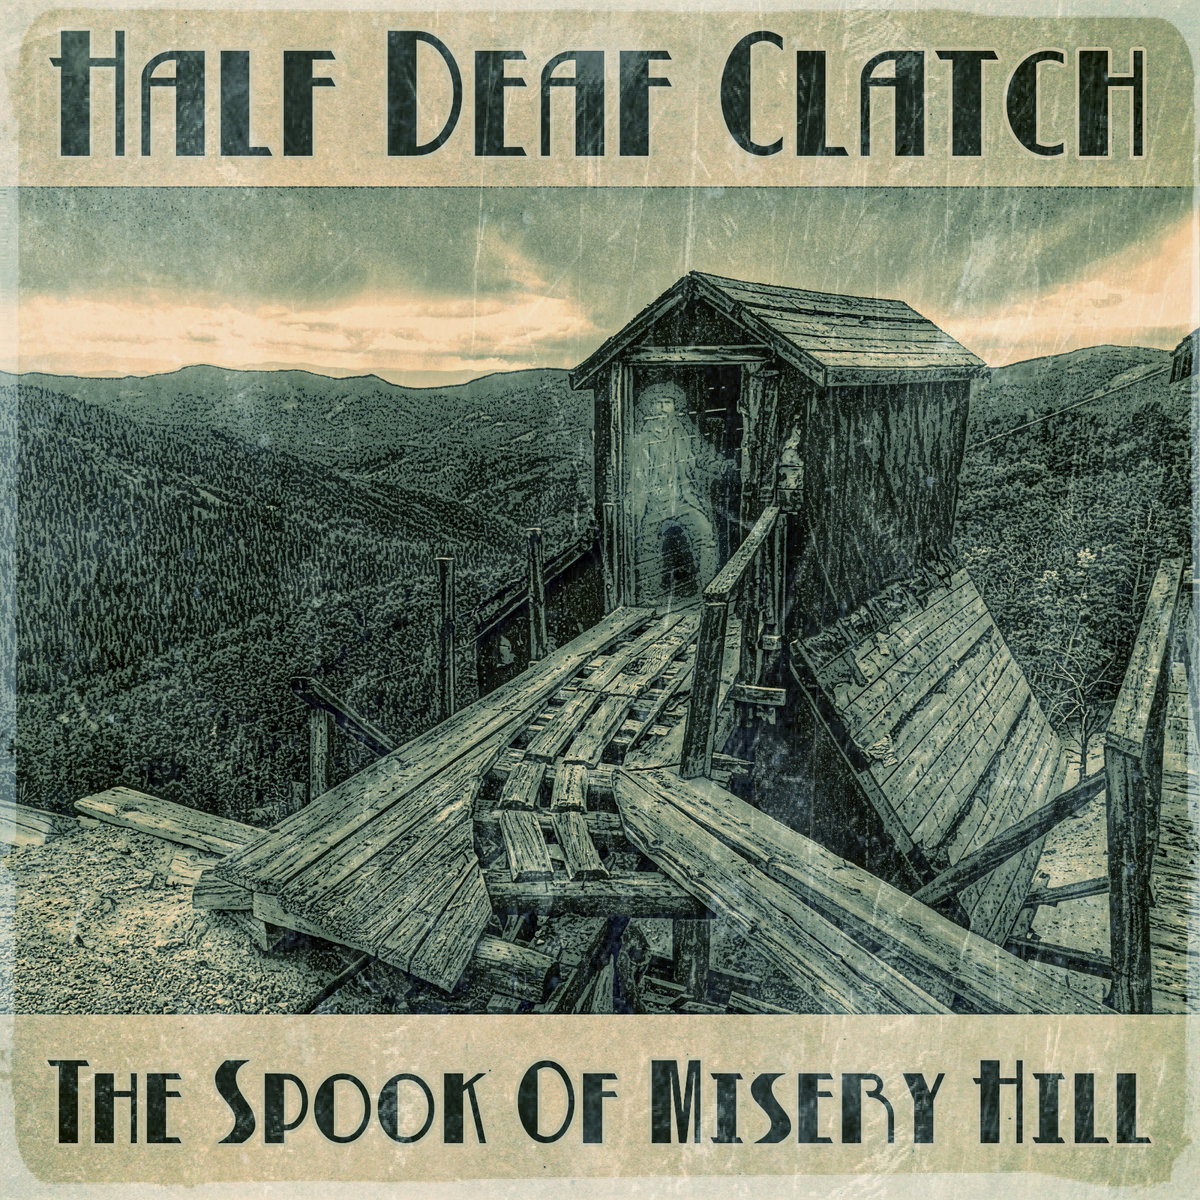 The Spook Of Misery Hill by Half Deaf Clatch